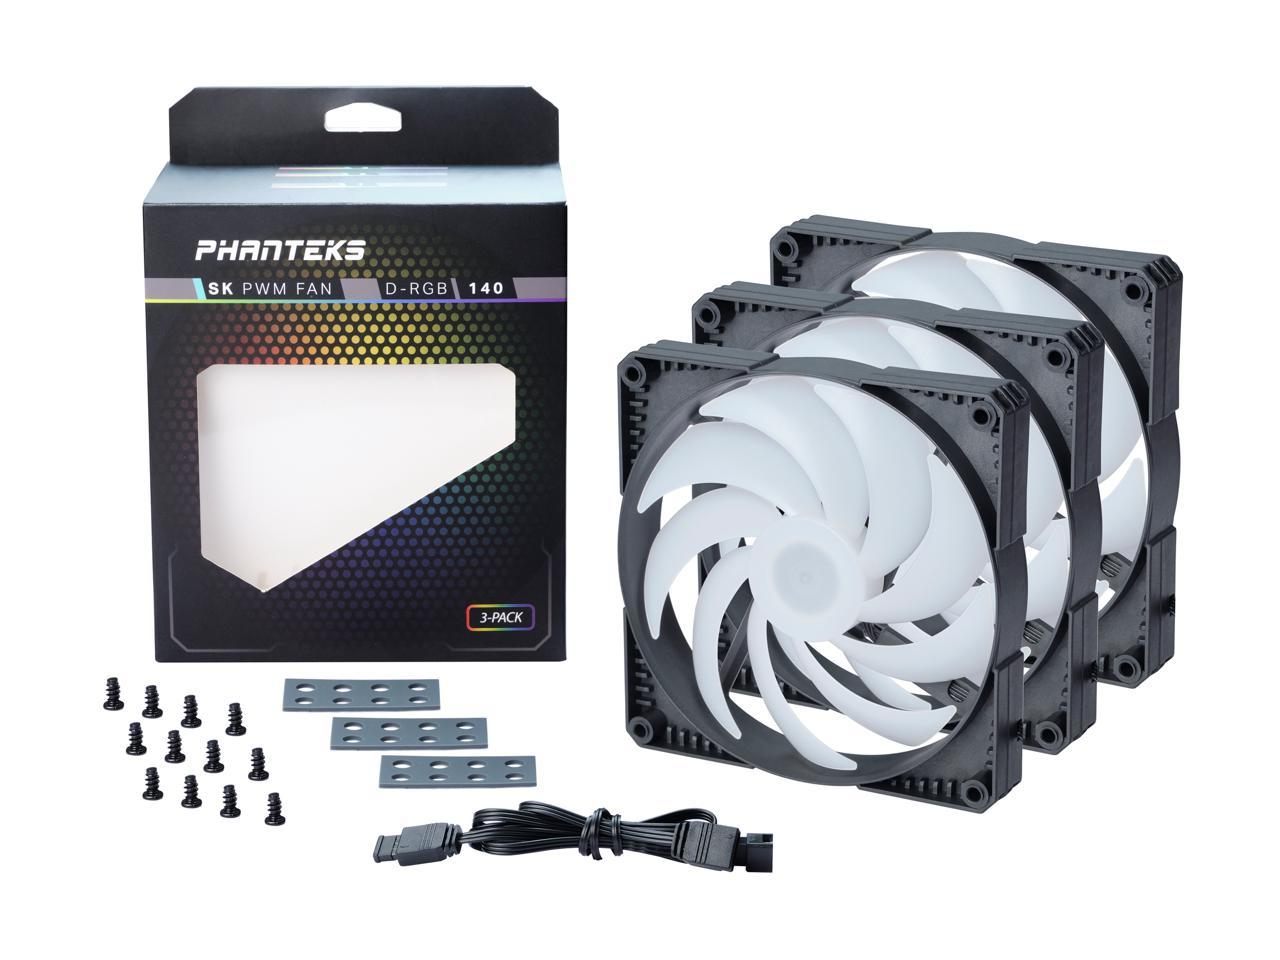 Phanteks SK 140mm PWM Fan, Digital RGB,3pack, Black